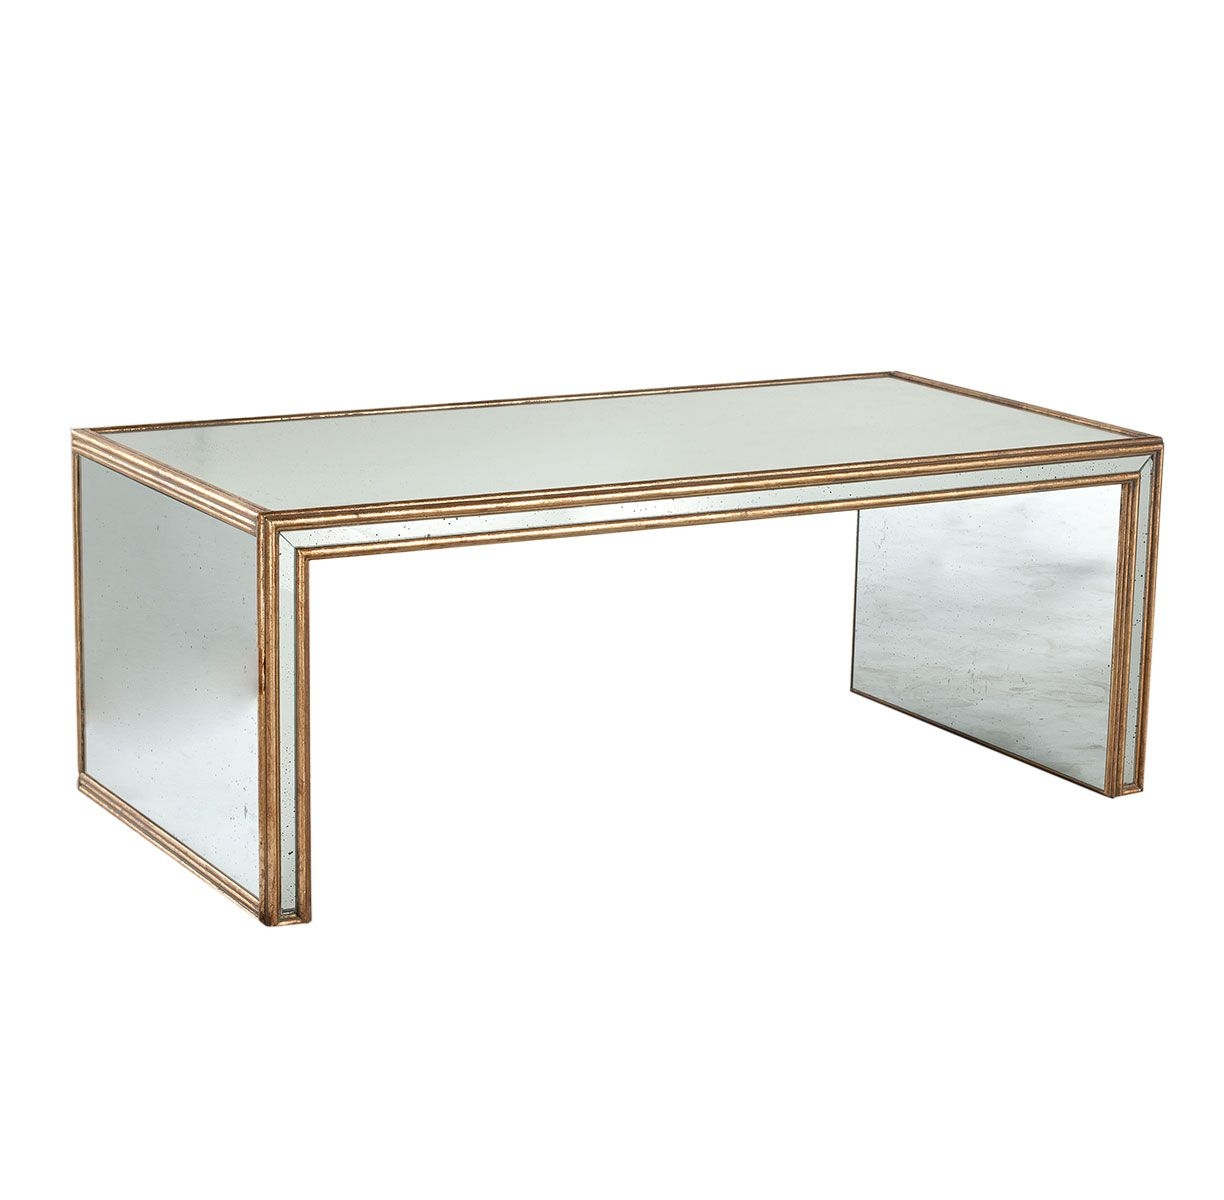 table vintage deco Mirrored coffee art